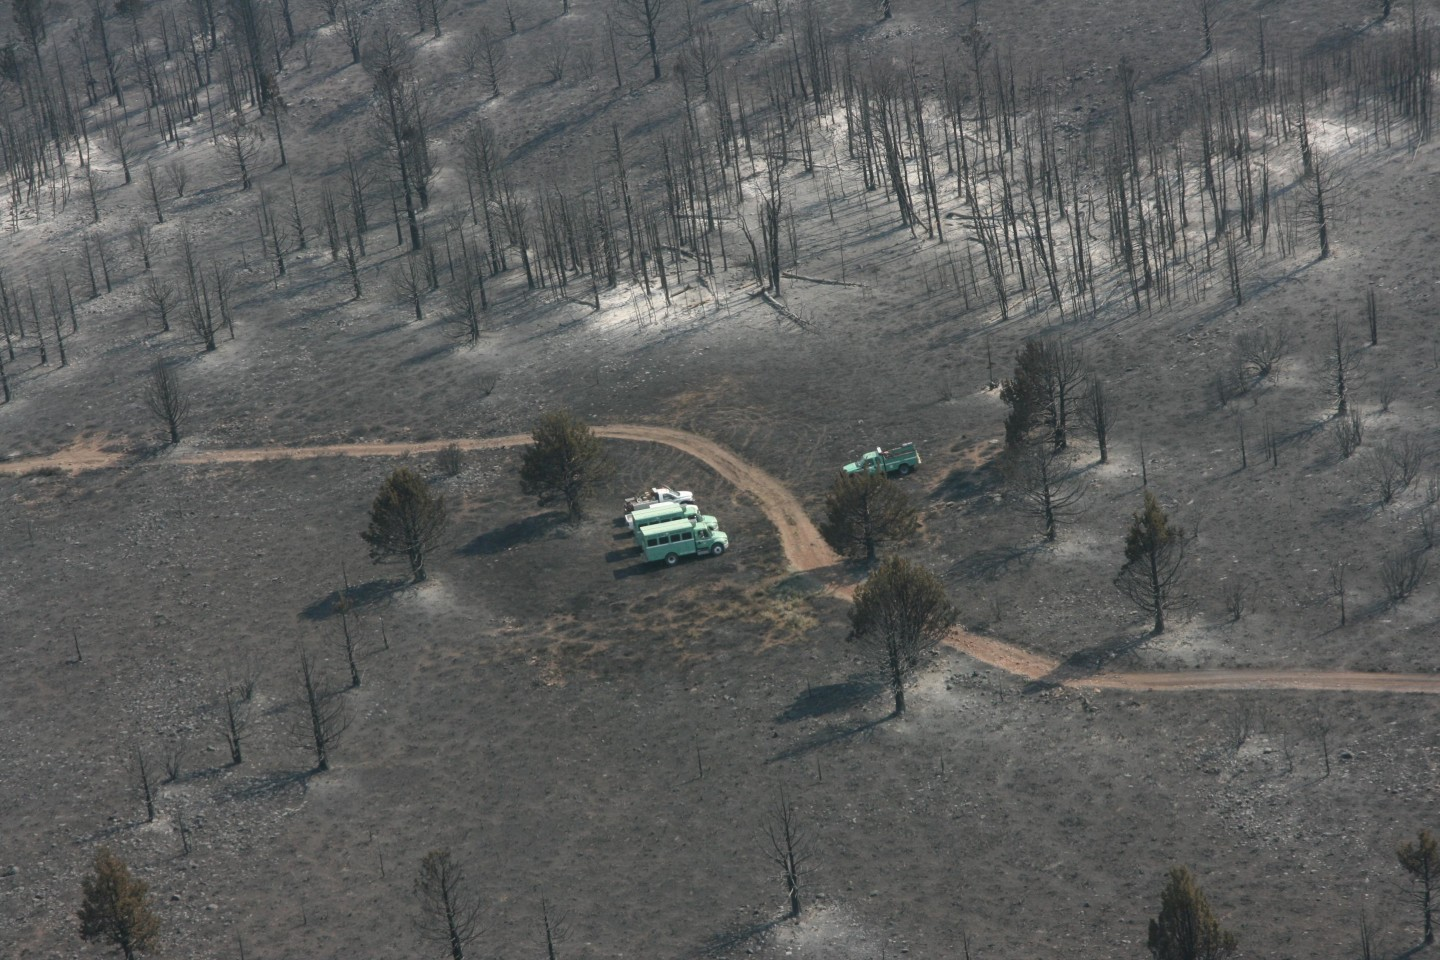 Part of the area burned this week in the 17,000-acre plus Washington Fire in Alpine County. U.S. Forest Service